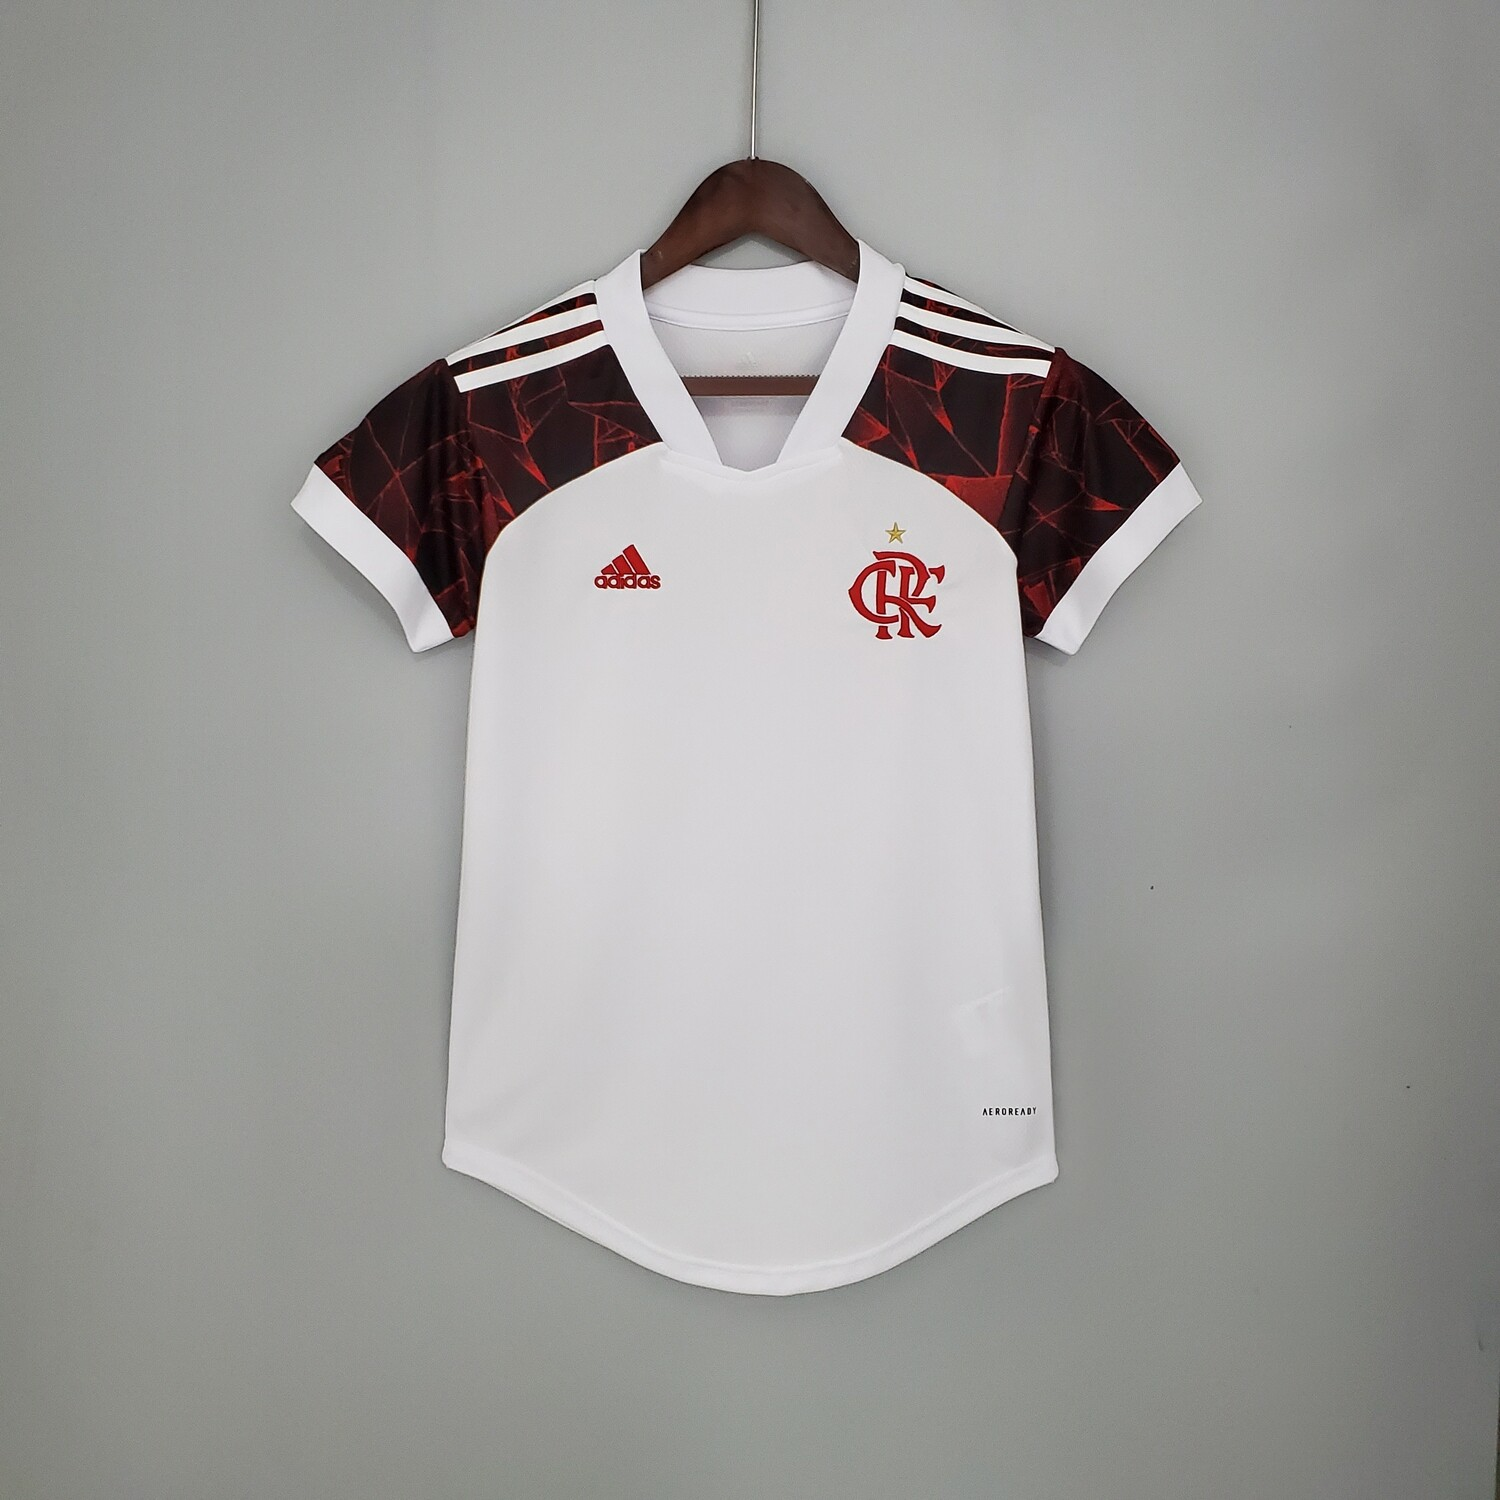 Flamengo Home [Brazil] 2021 Women's Jersey [Pre-paid Only]